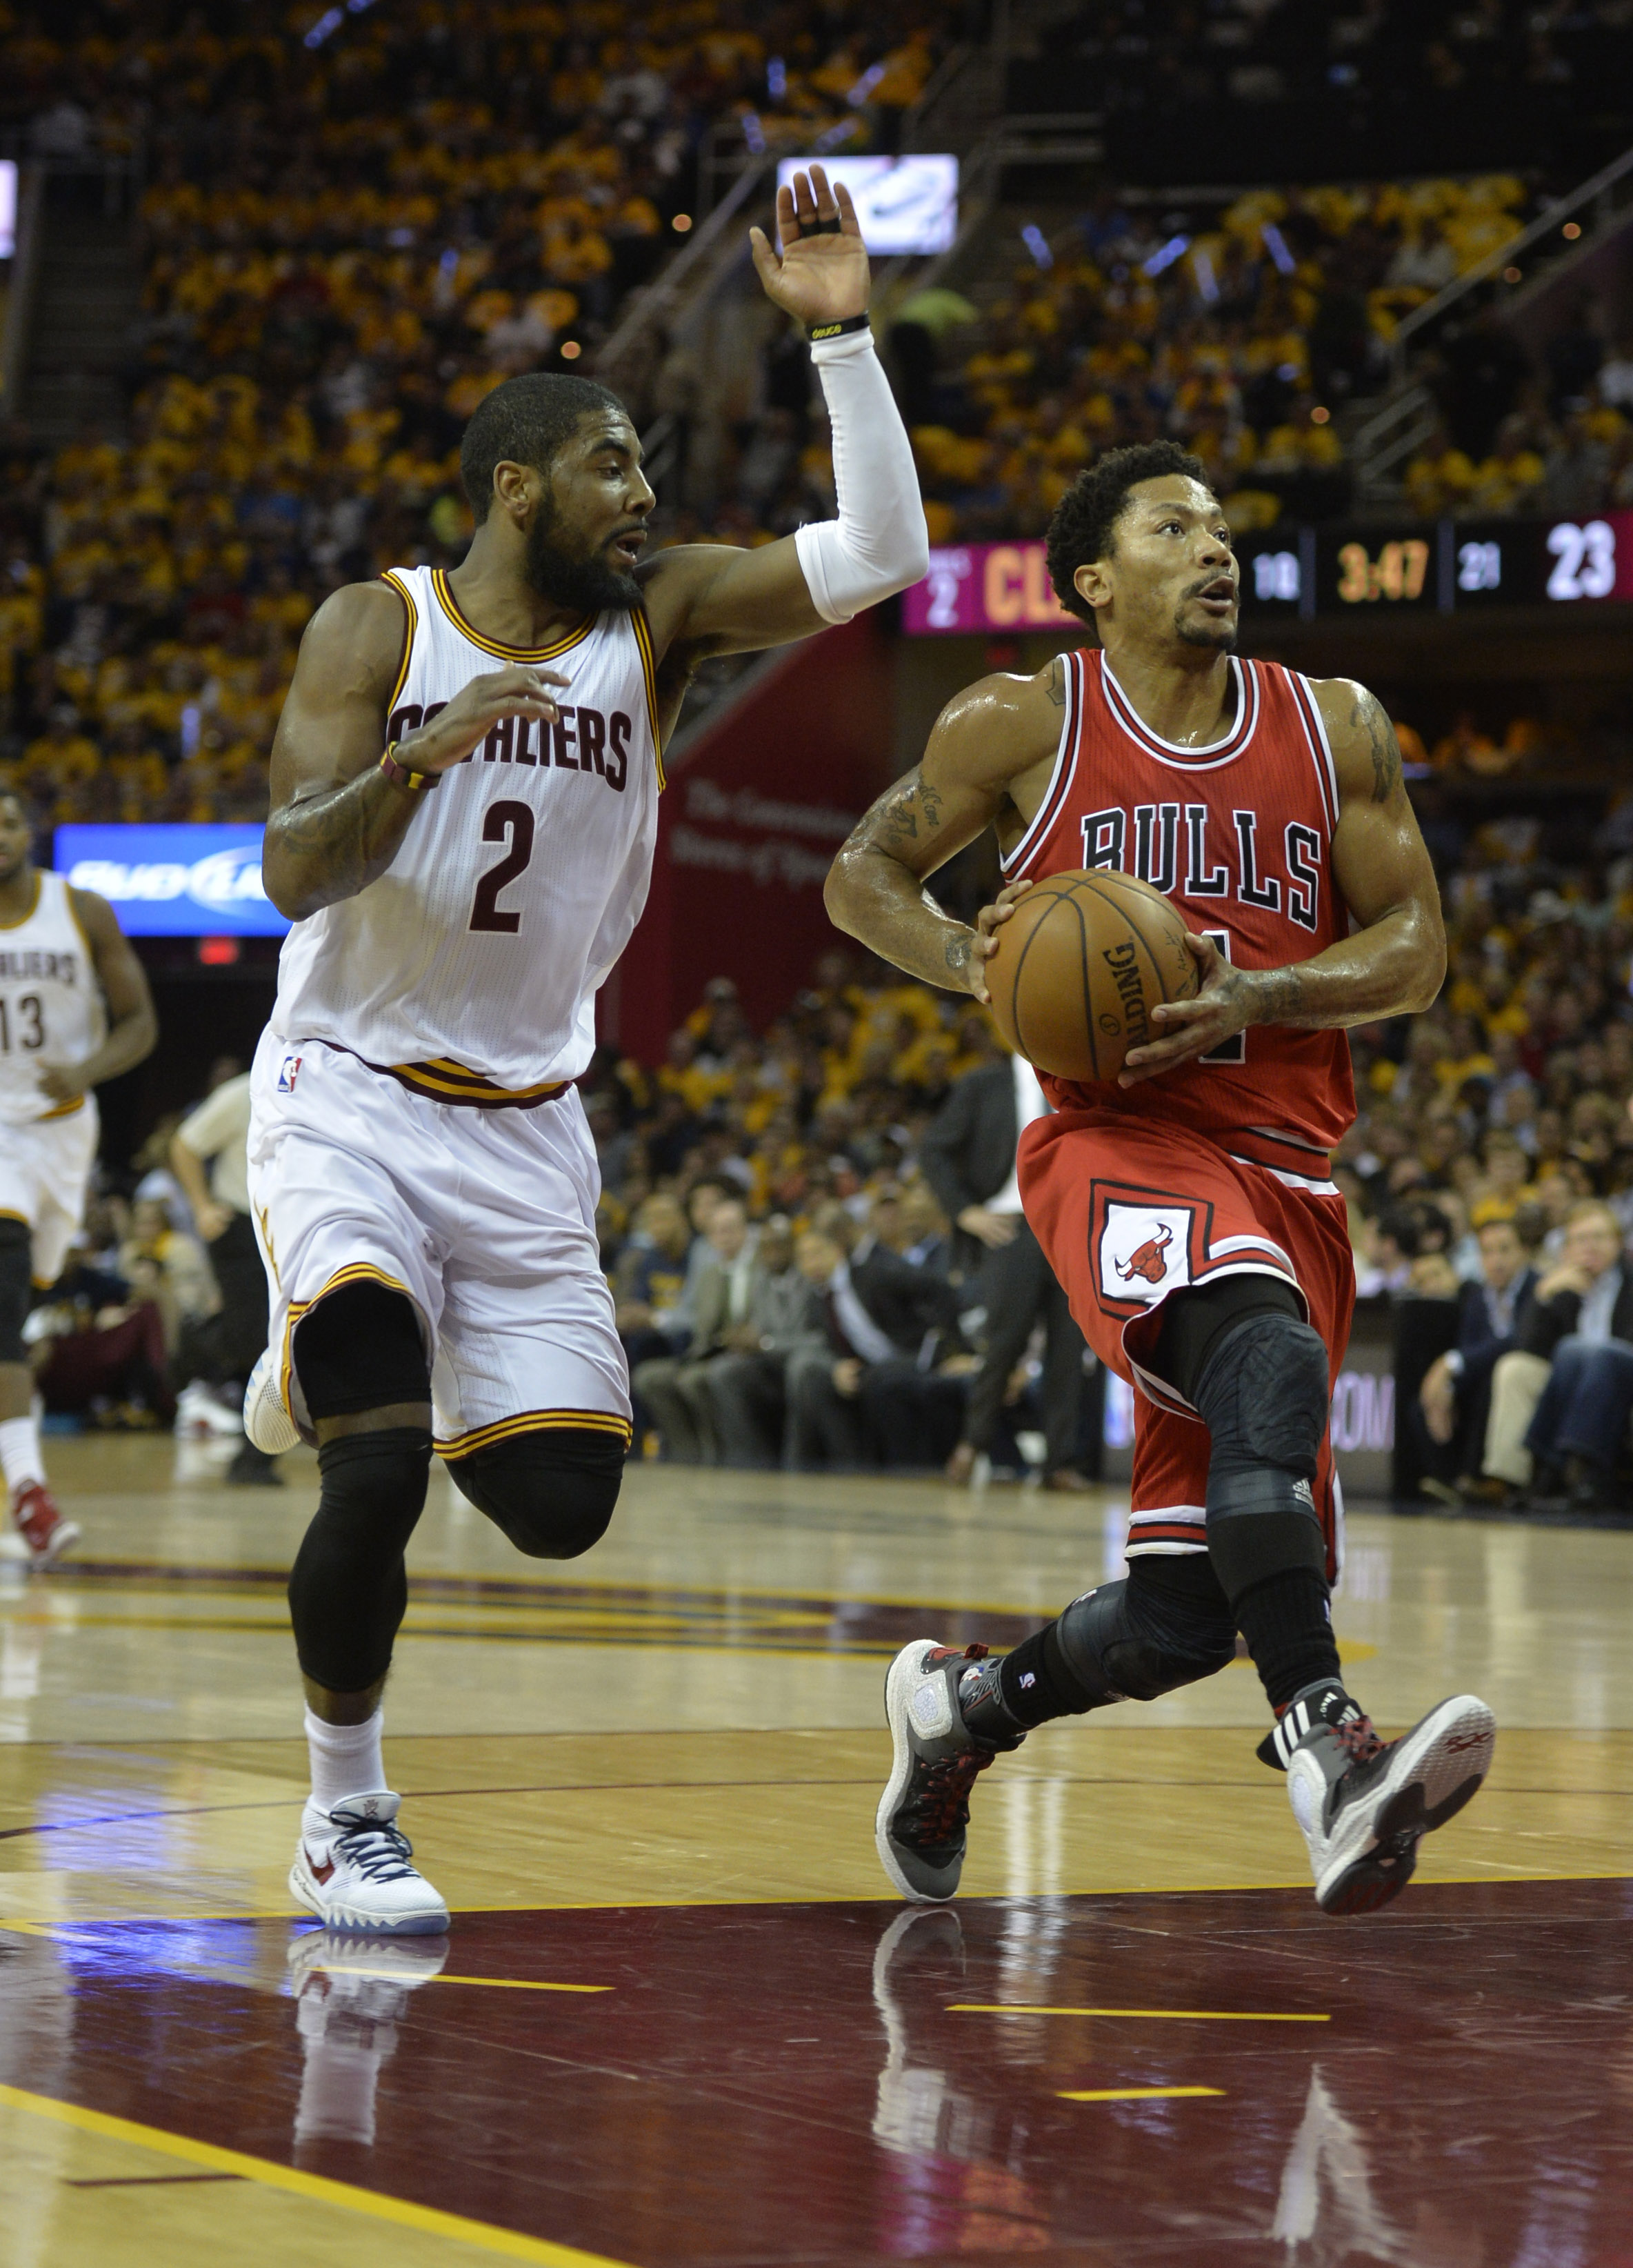 Bulls vs. Cavaliers 2015 results: Derrick Rose leads Chicago to 99-92 Game 1 win